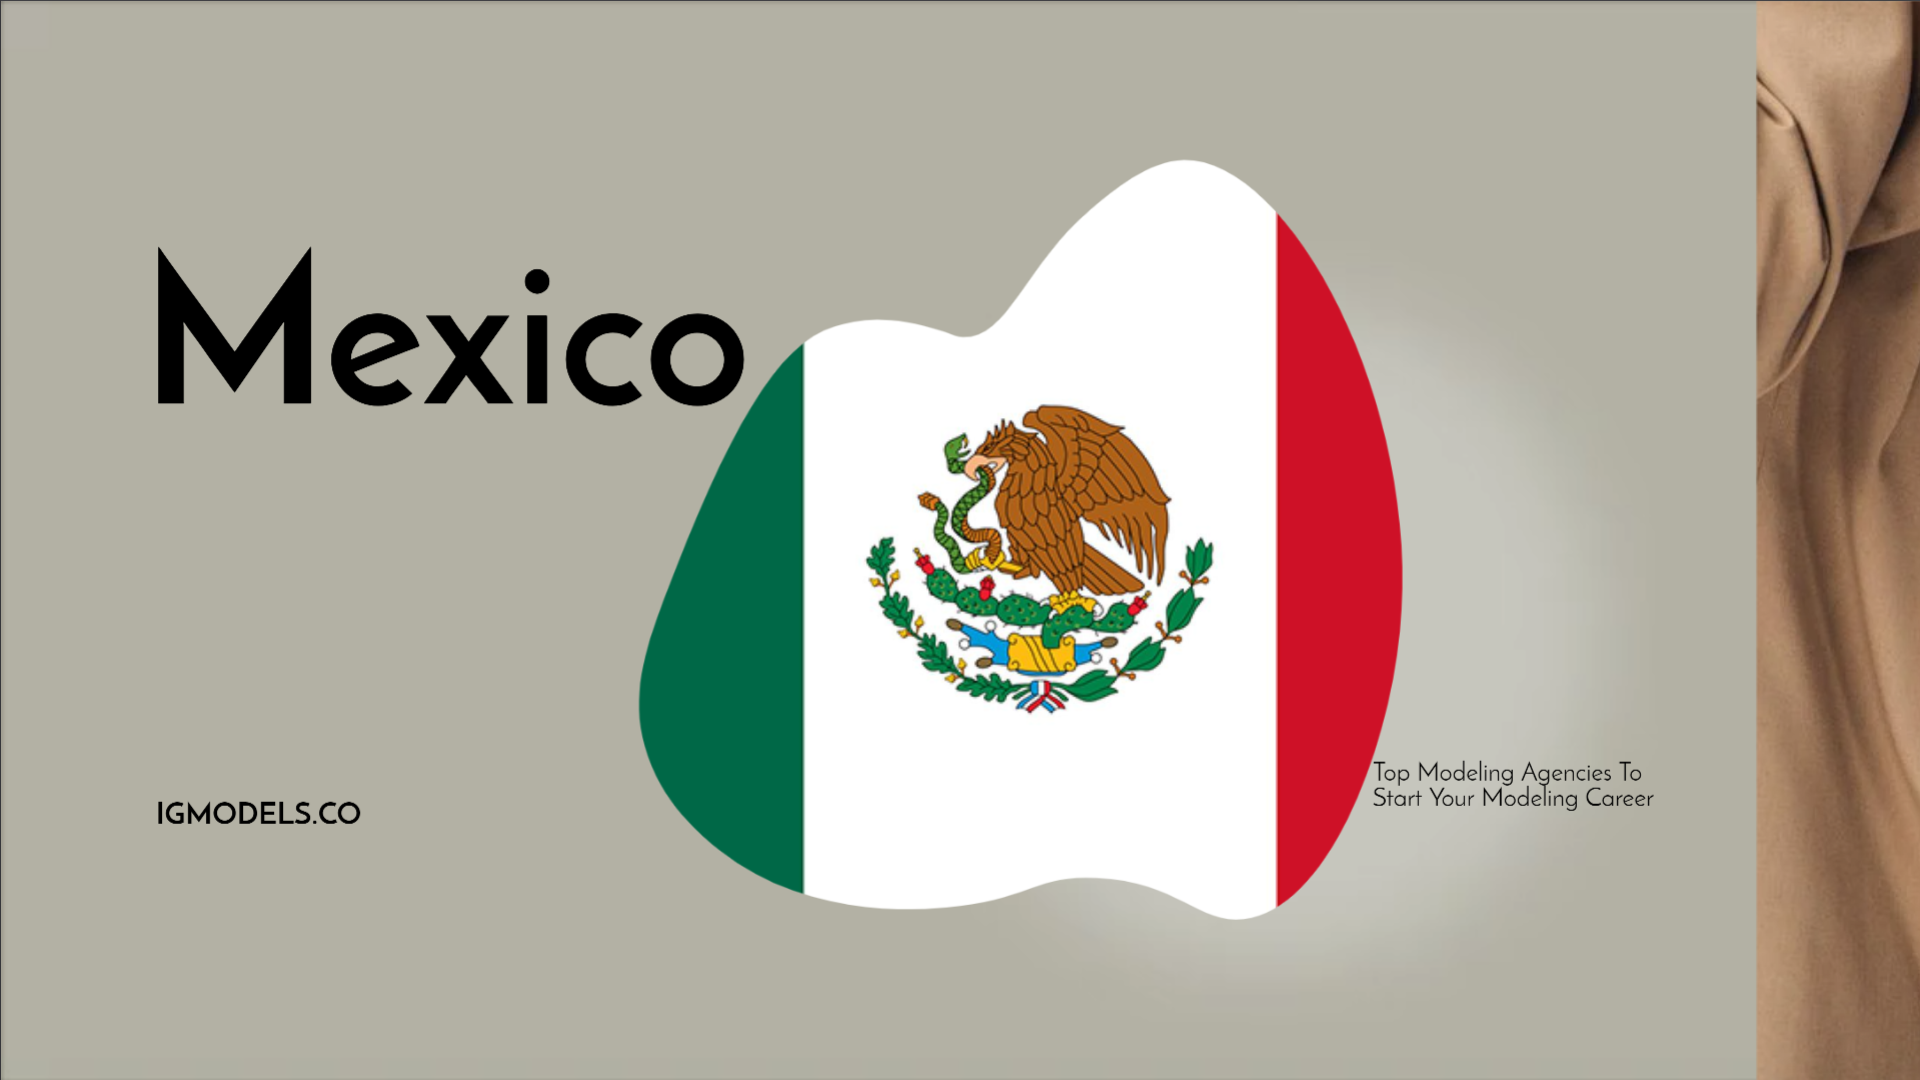 List : Top 35 Modeling Agencies In Mexico To Start Your Modeling Career In 2021